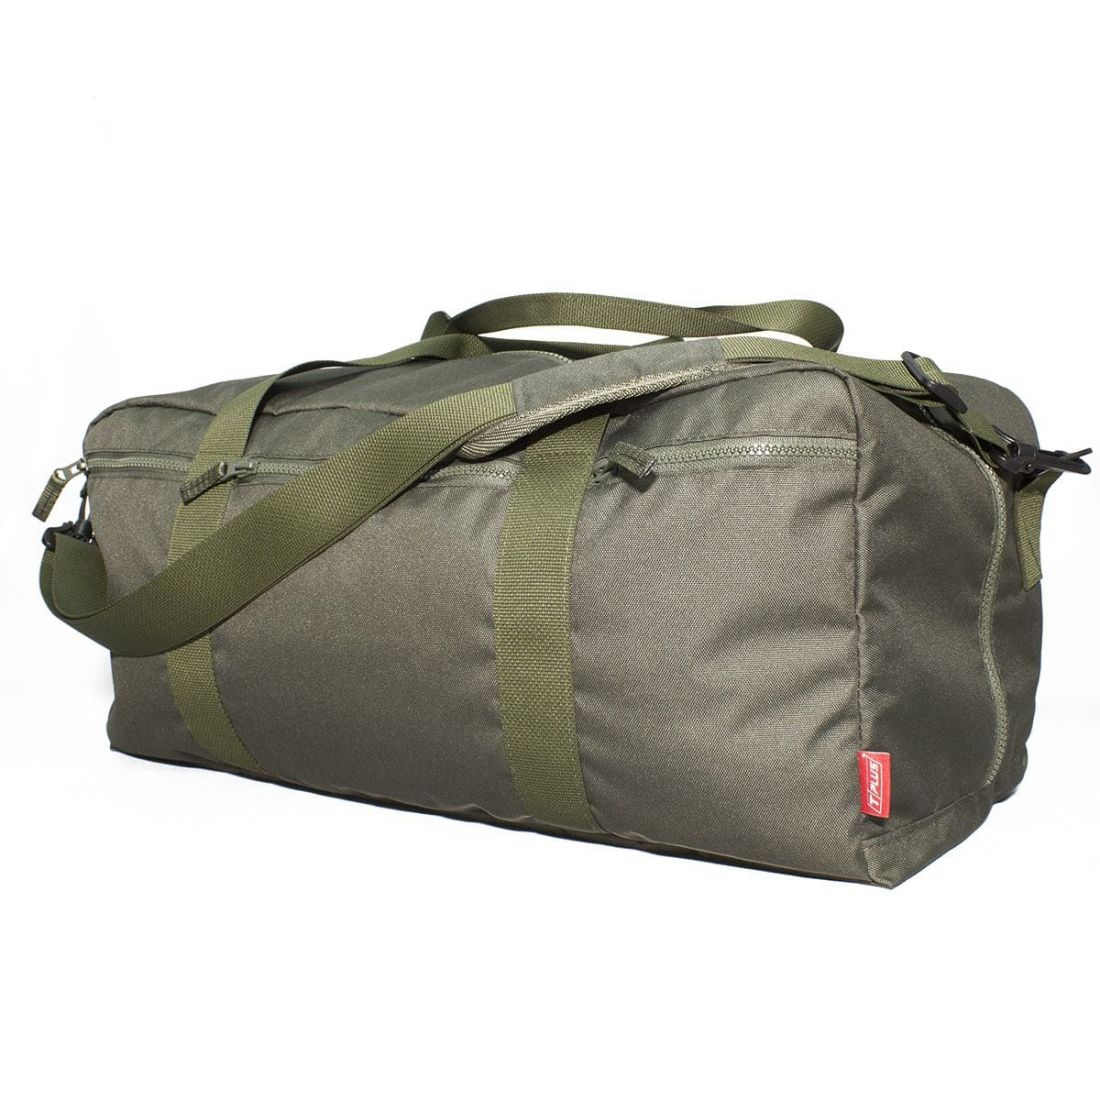 "Сумка ""Duffle Bag"" 530х270х270 мм (оксфорд 600, олива), Tplus"